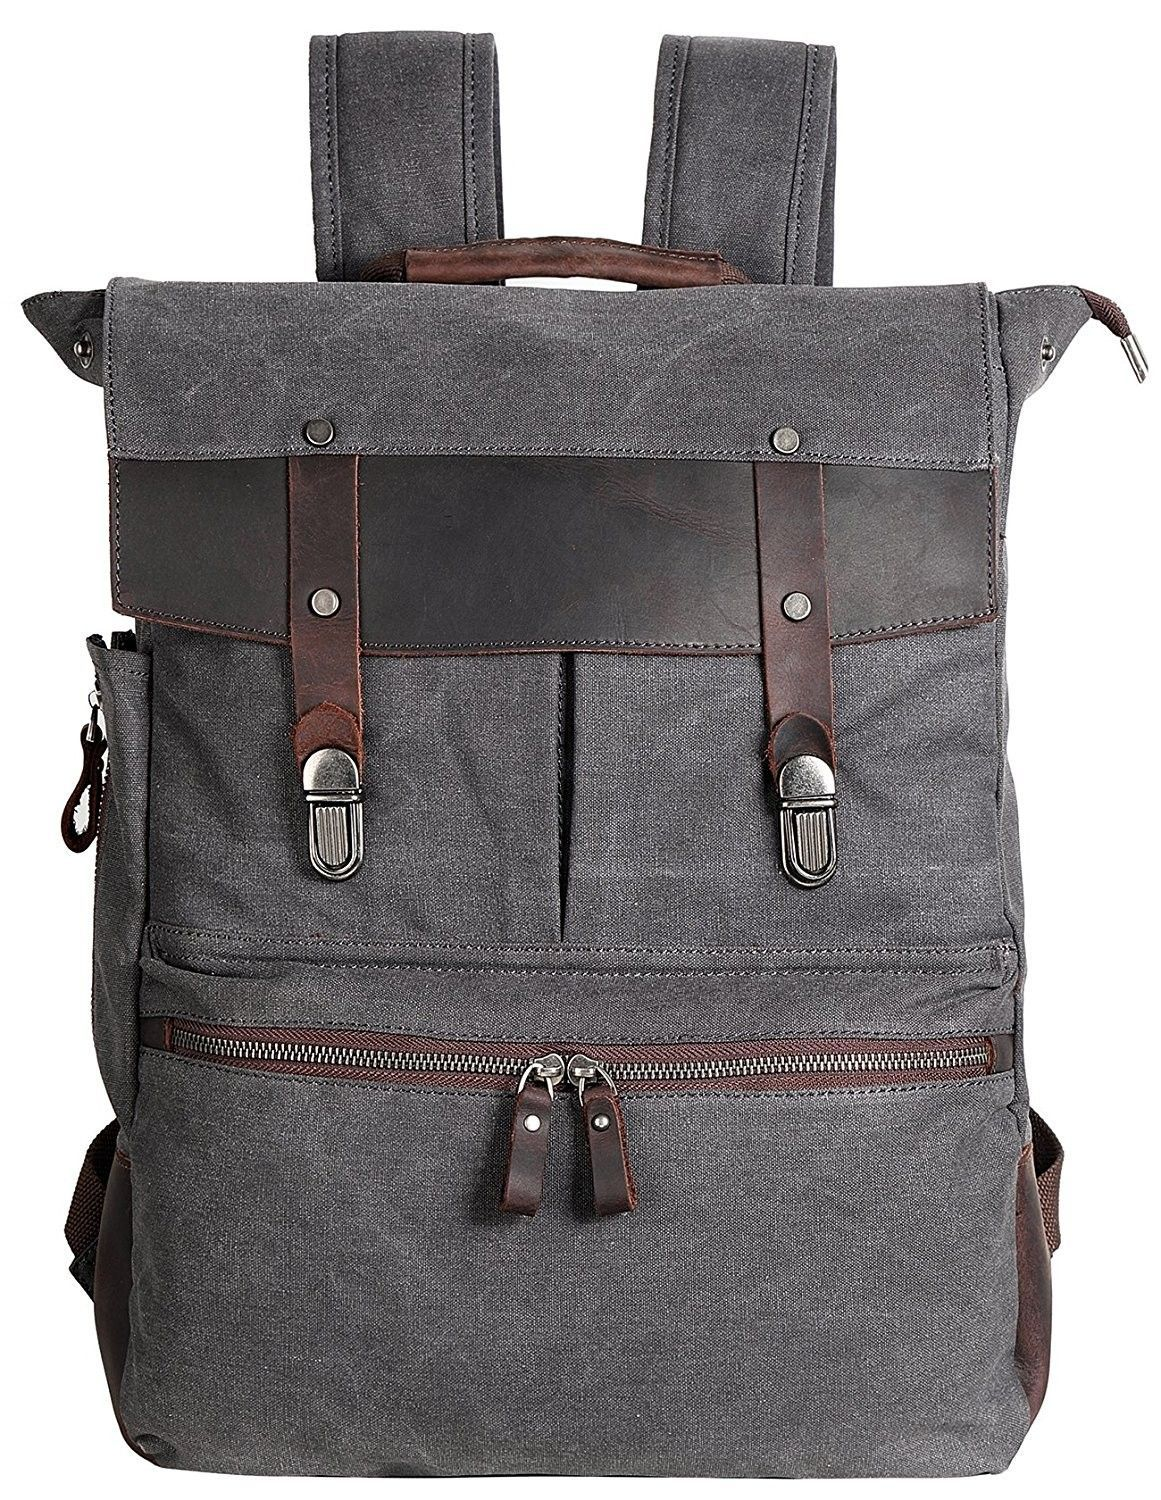 Leather Backpack Vintage Rucksack - M-grey-2018version - CN12JRZRWFV ... 45d7b8f4cee1b